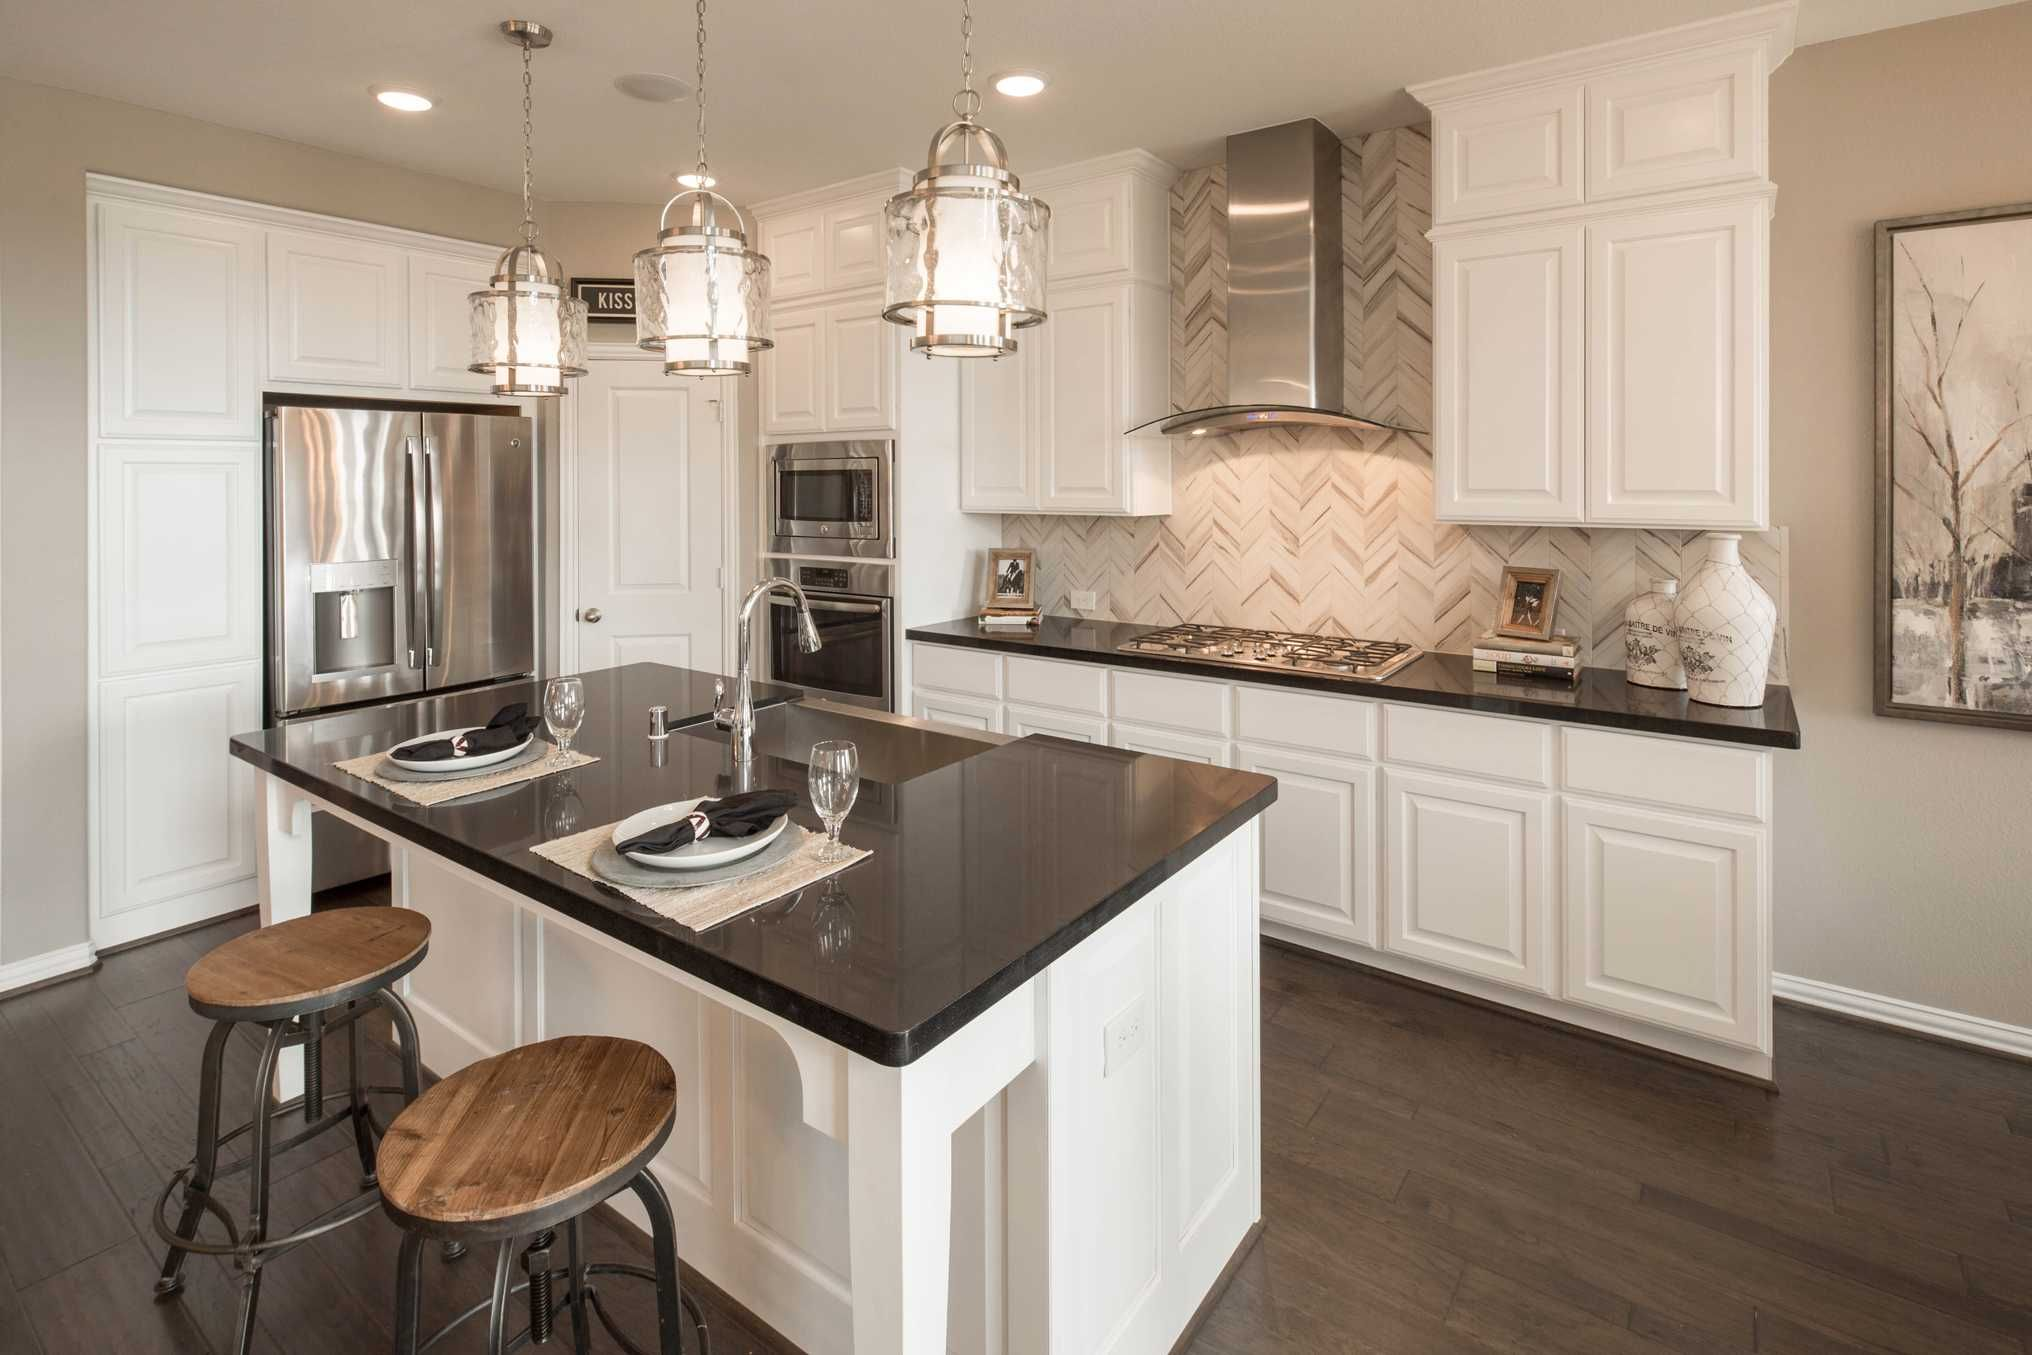 Kitchen Design Houston Stunning Highland Homes Plan 559 H Model Home In Houston Texas Cross Creek Design Inspiration